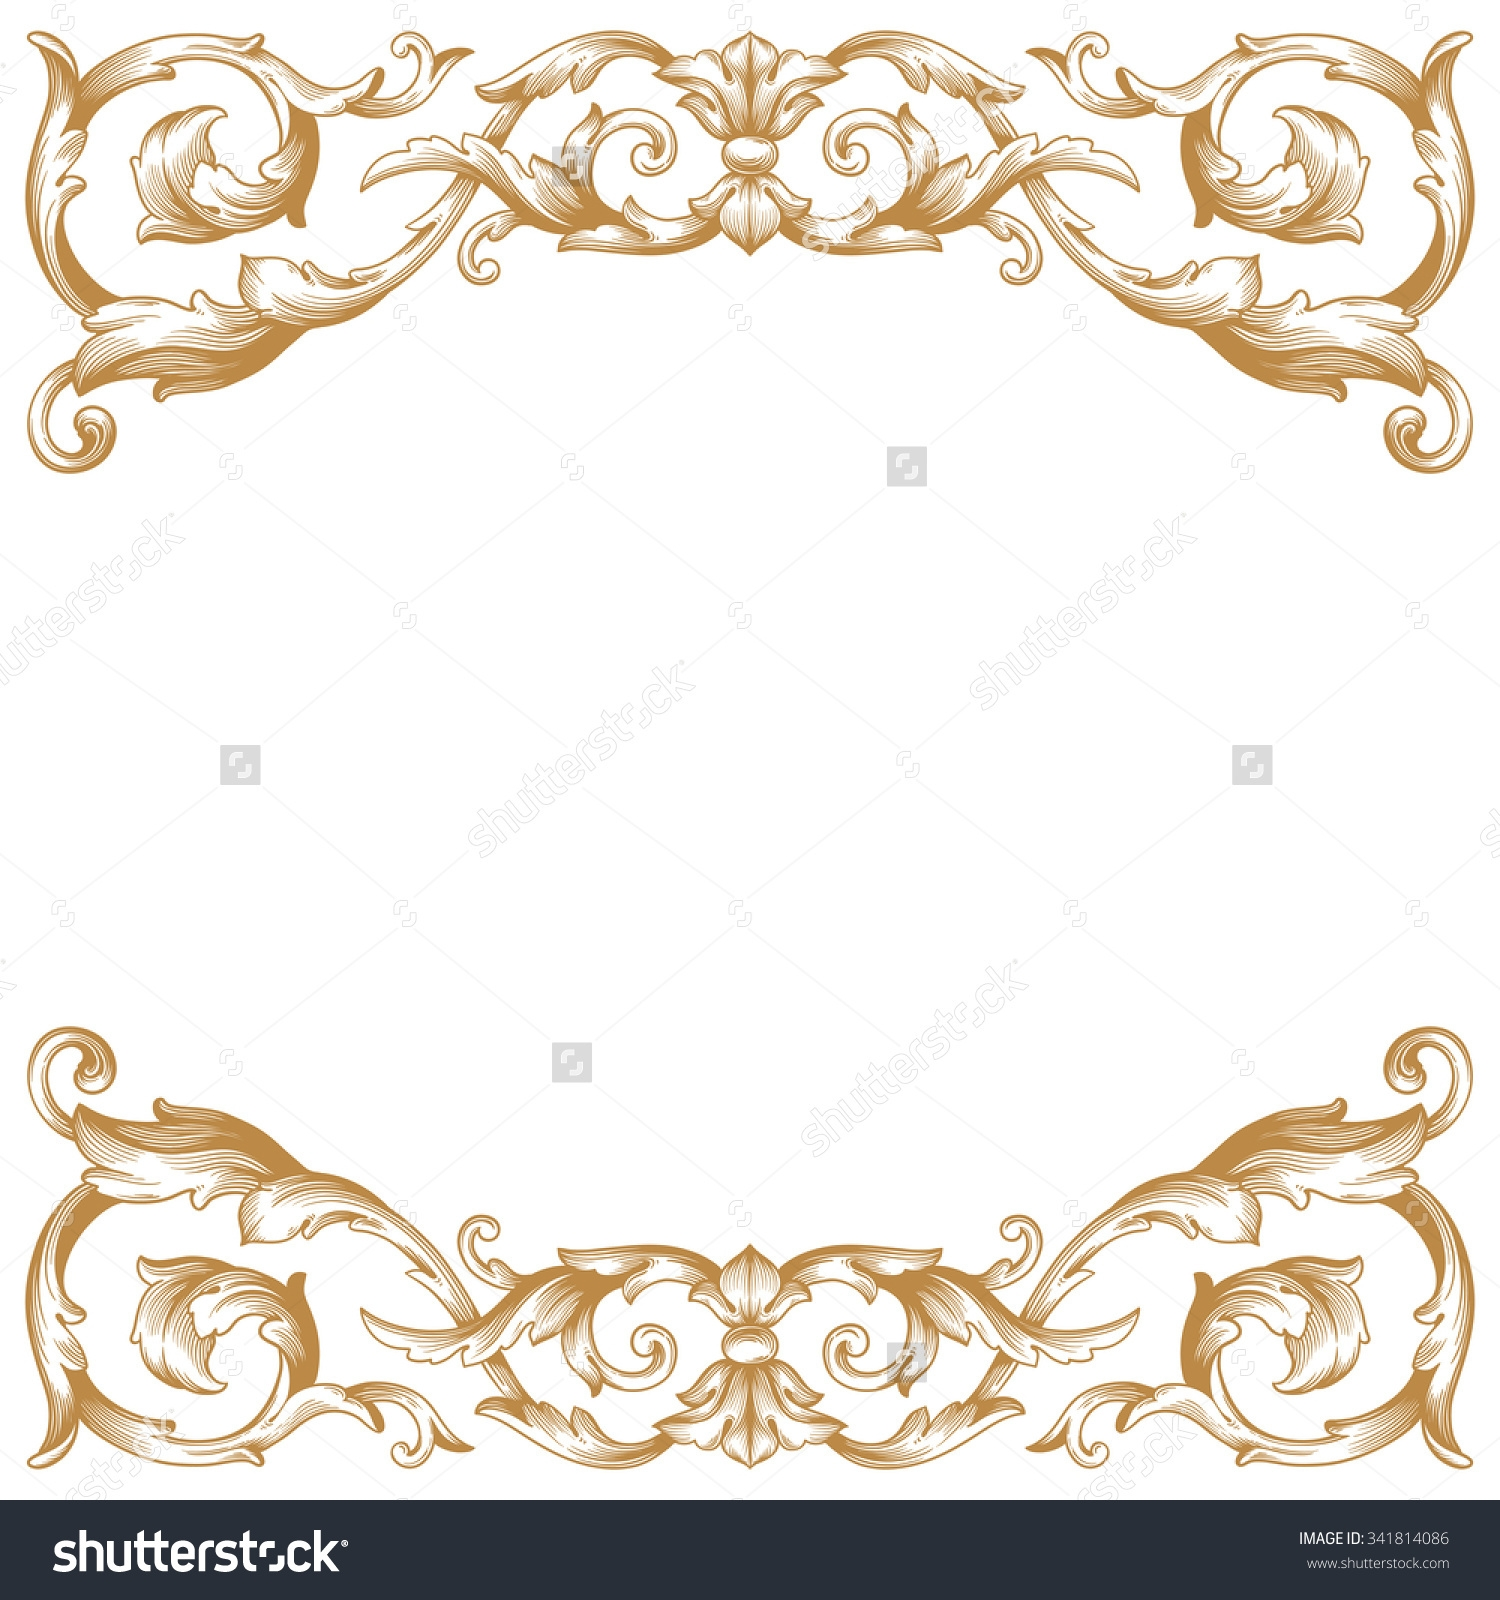 Gold block frames clipart clipart library library Gold block frames clipart - ClipartFox clipart library library